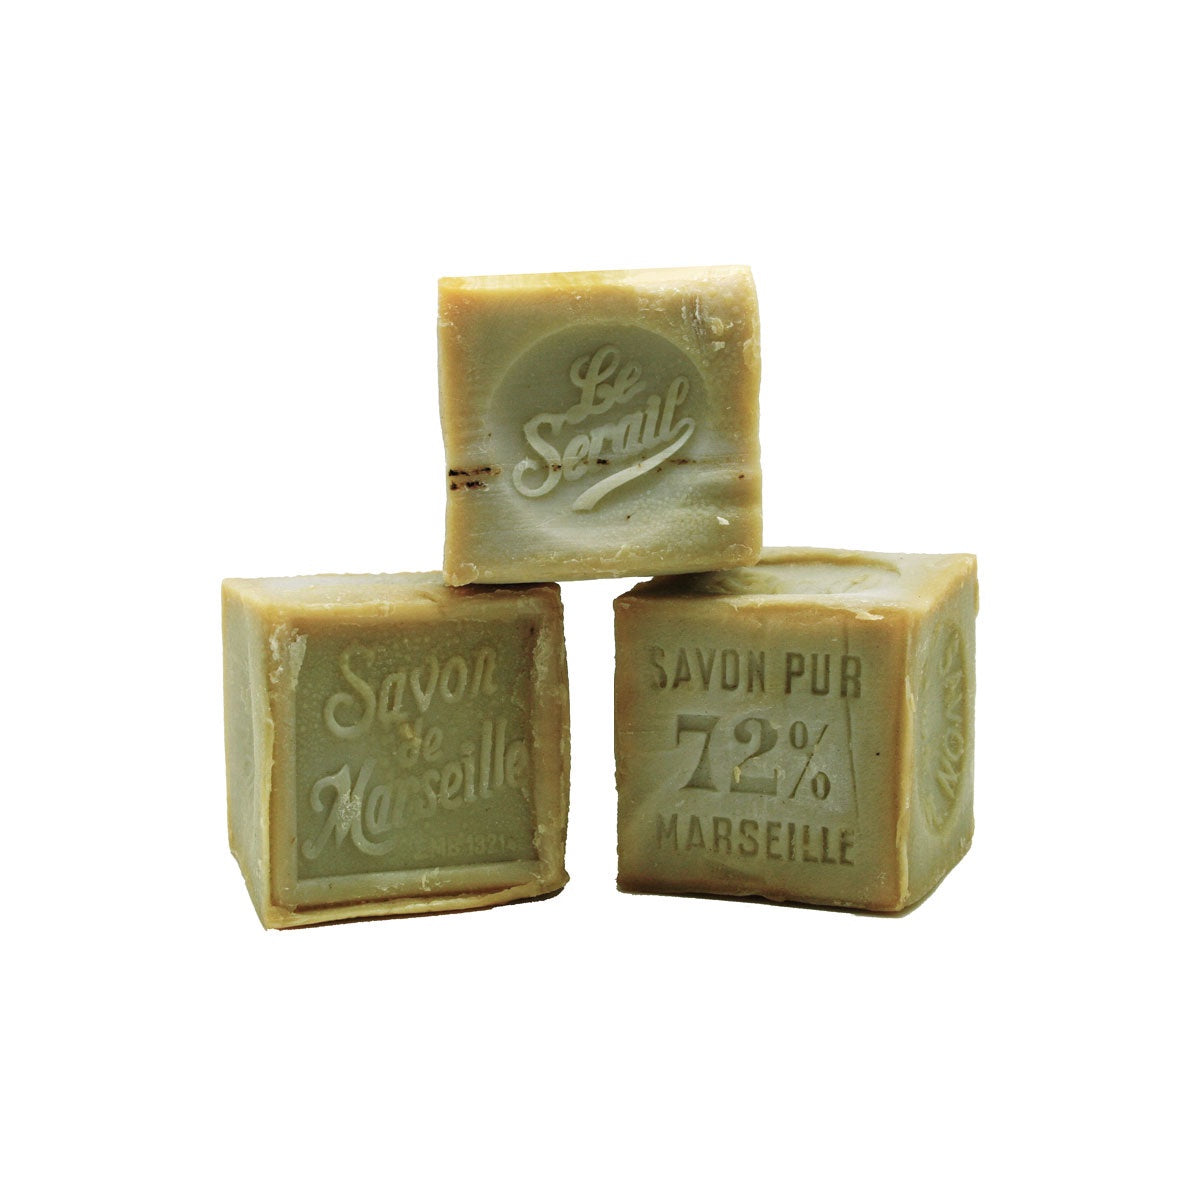 300g Olive  Cube Soap by Le Serail